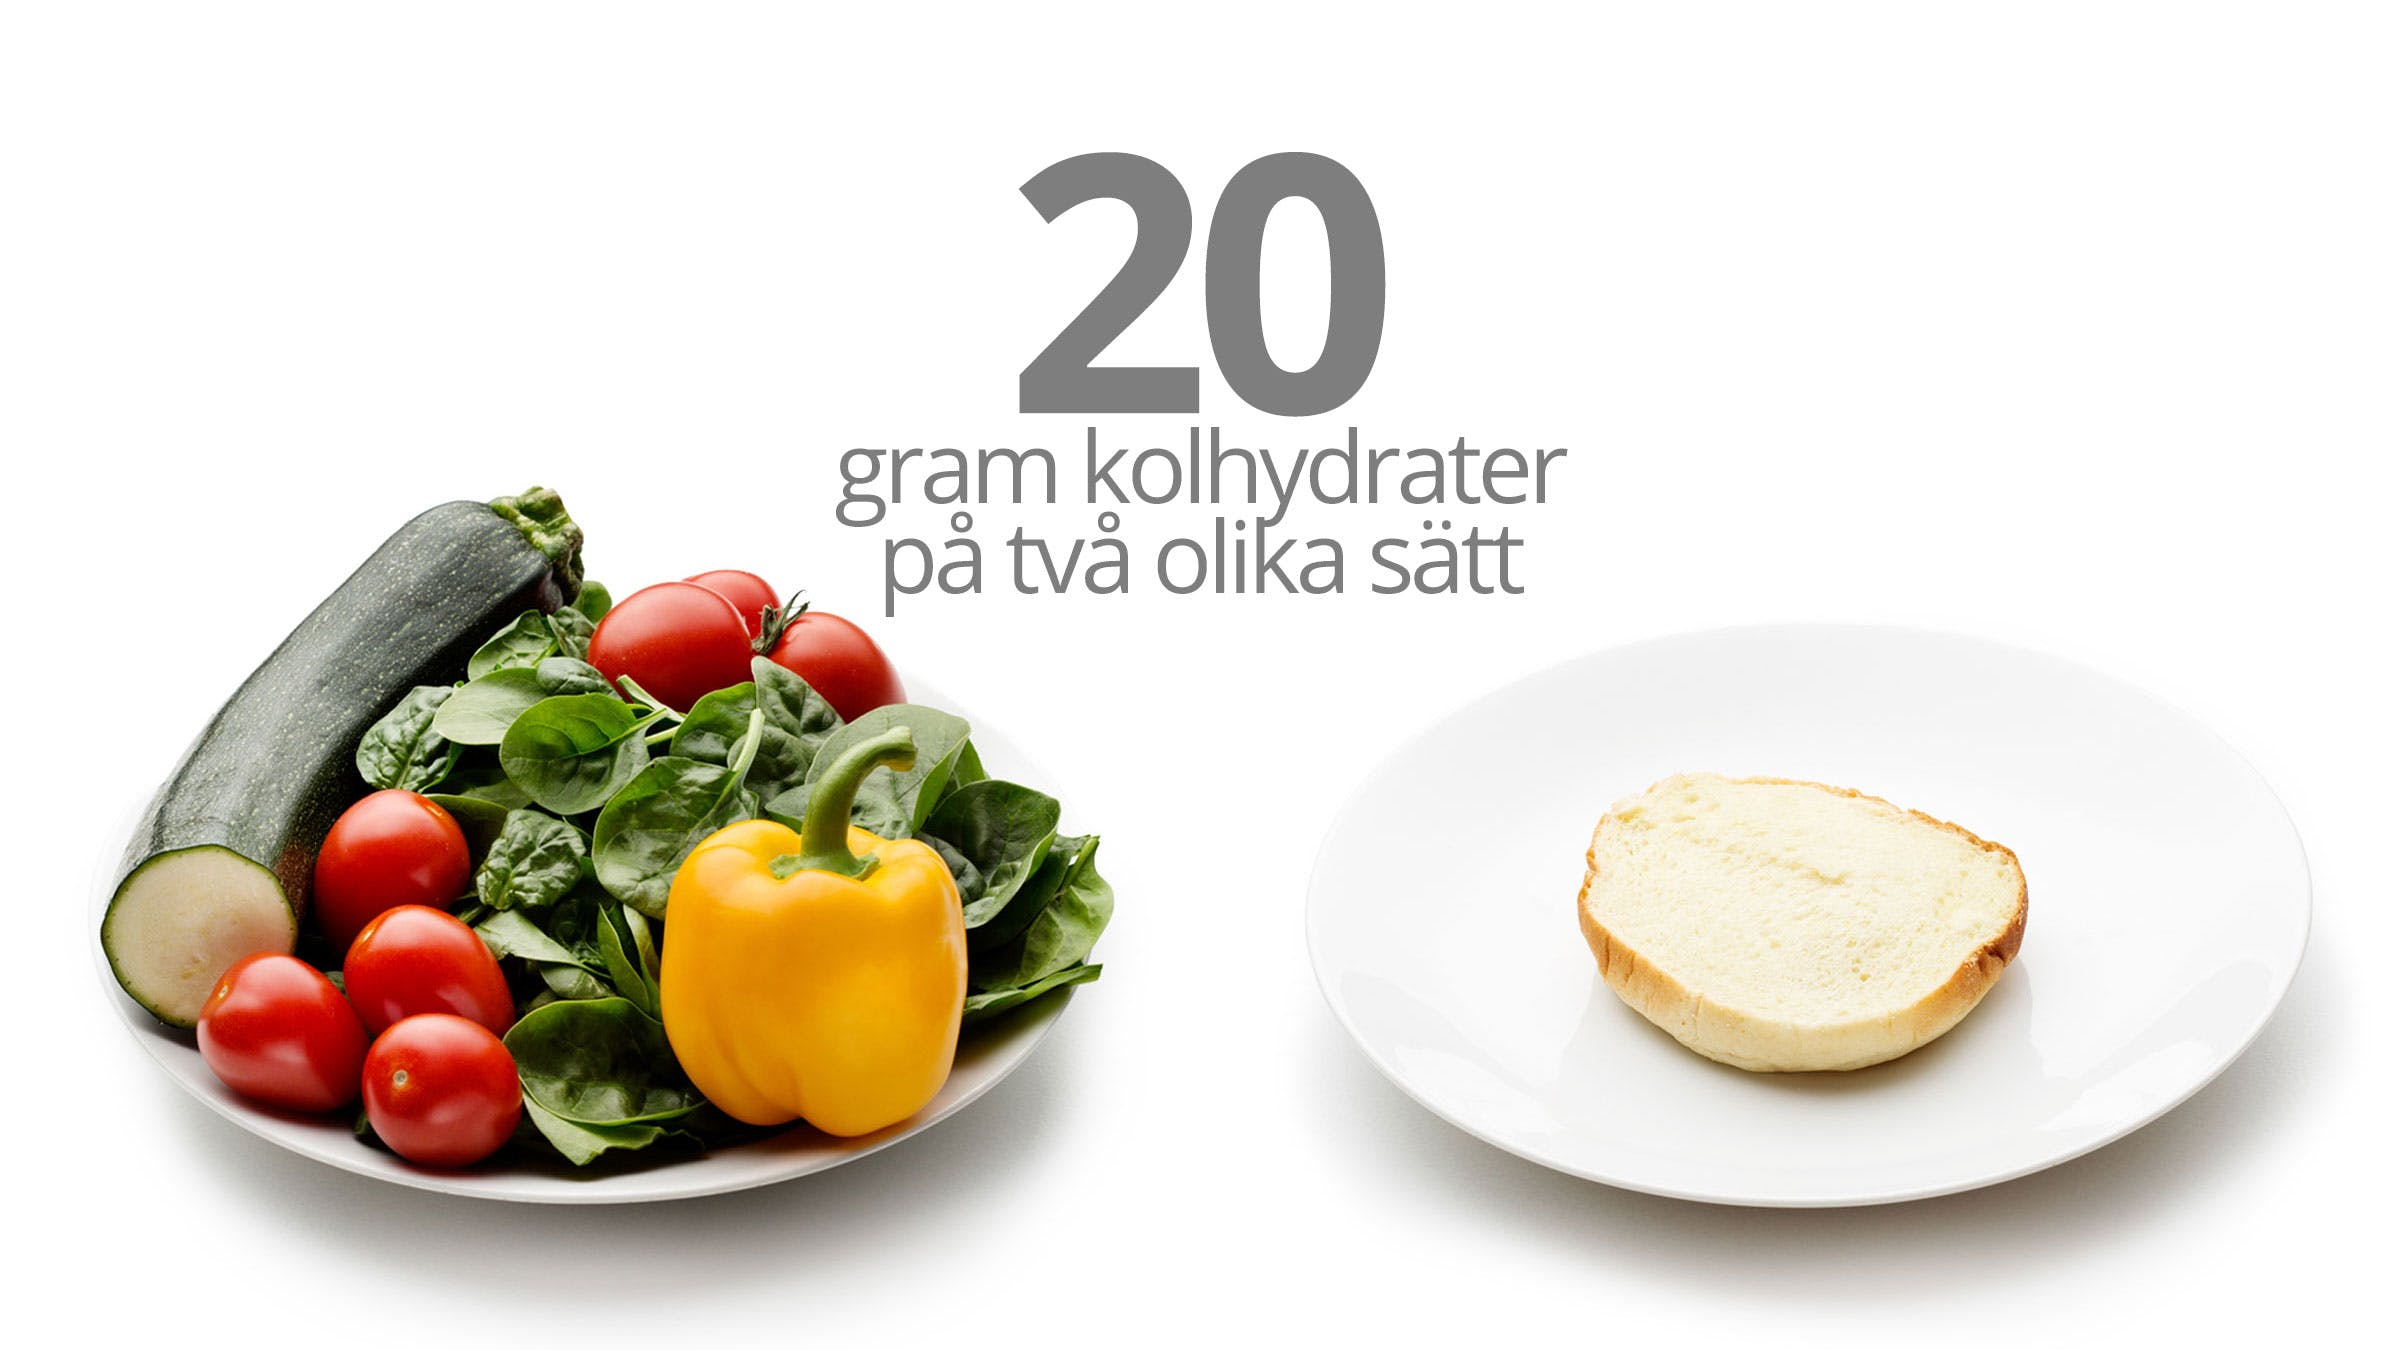 KD_20g_carbs_intwoways